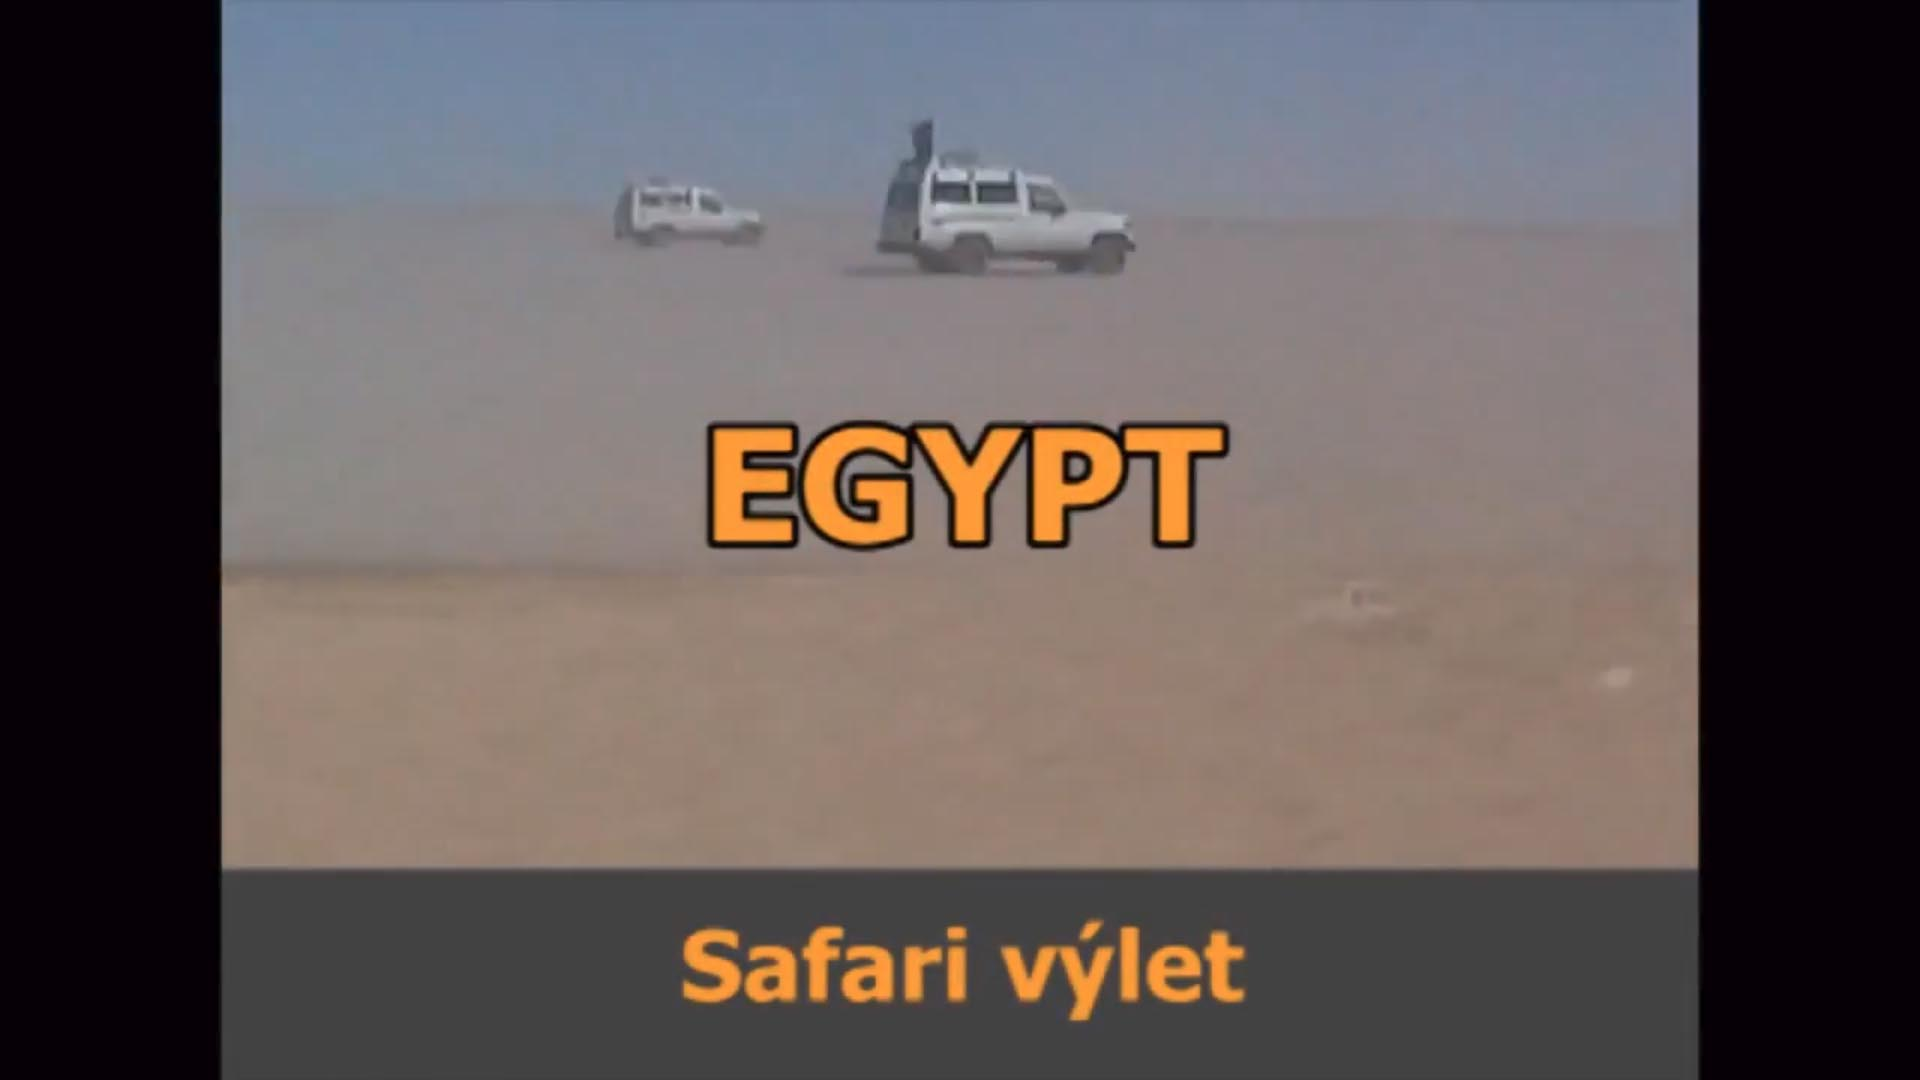 Egypt – Safari výlet